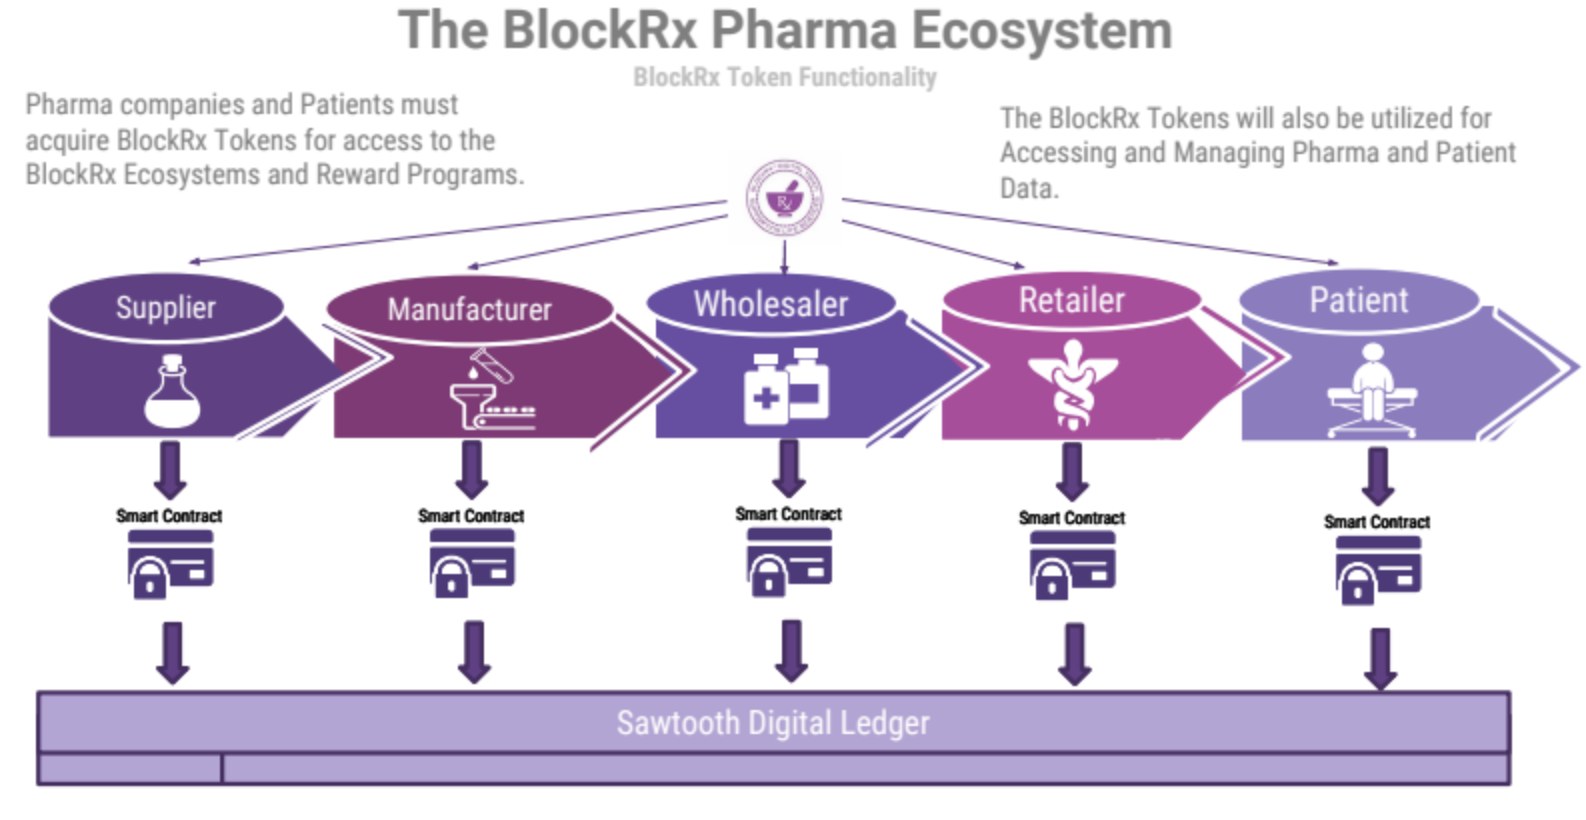 The BlockRx Pharma Ecosystem - Healthcare blockchain use case